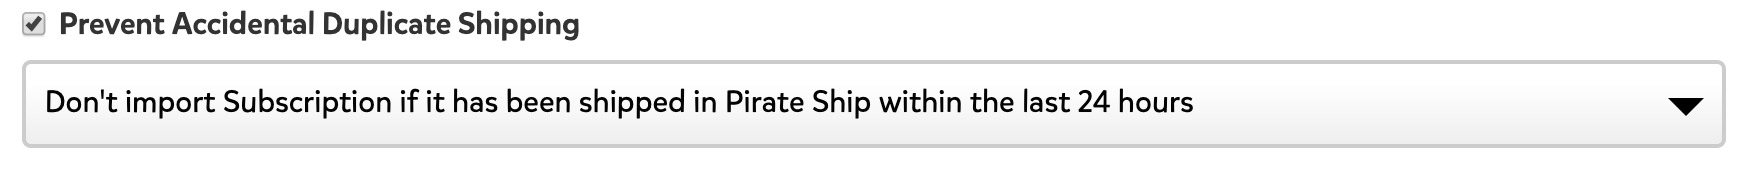 A screenshot showing the option to 'Prevent Accidental Duplicate Shipping.' There's a drop down menu below this with additional options for this feature.